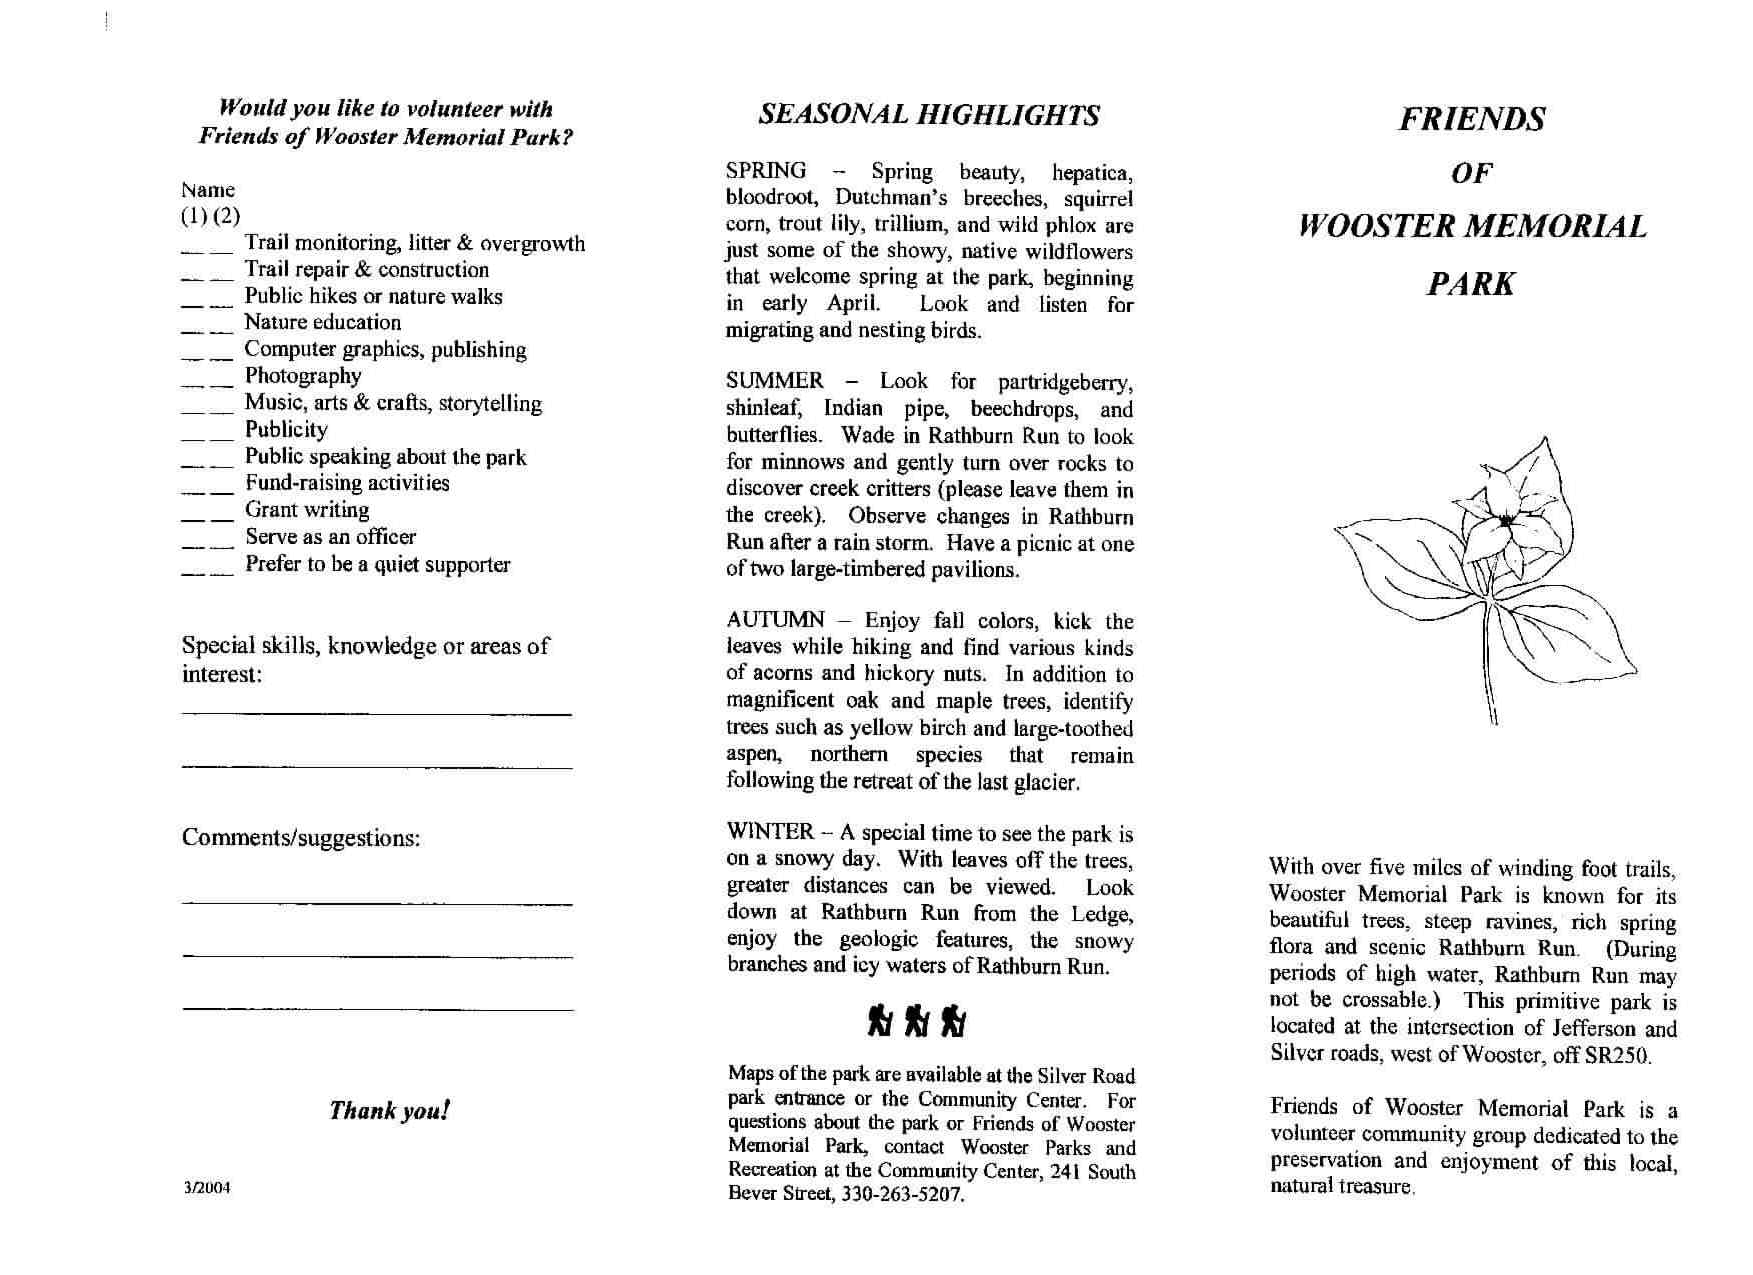 Wooster Memorial Park Brochure Part 2